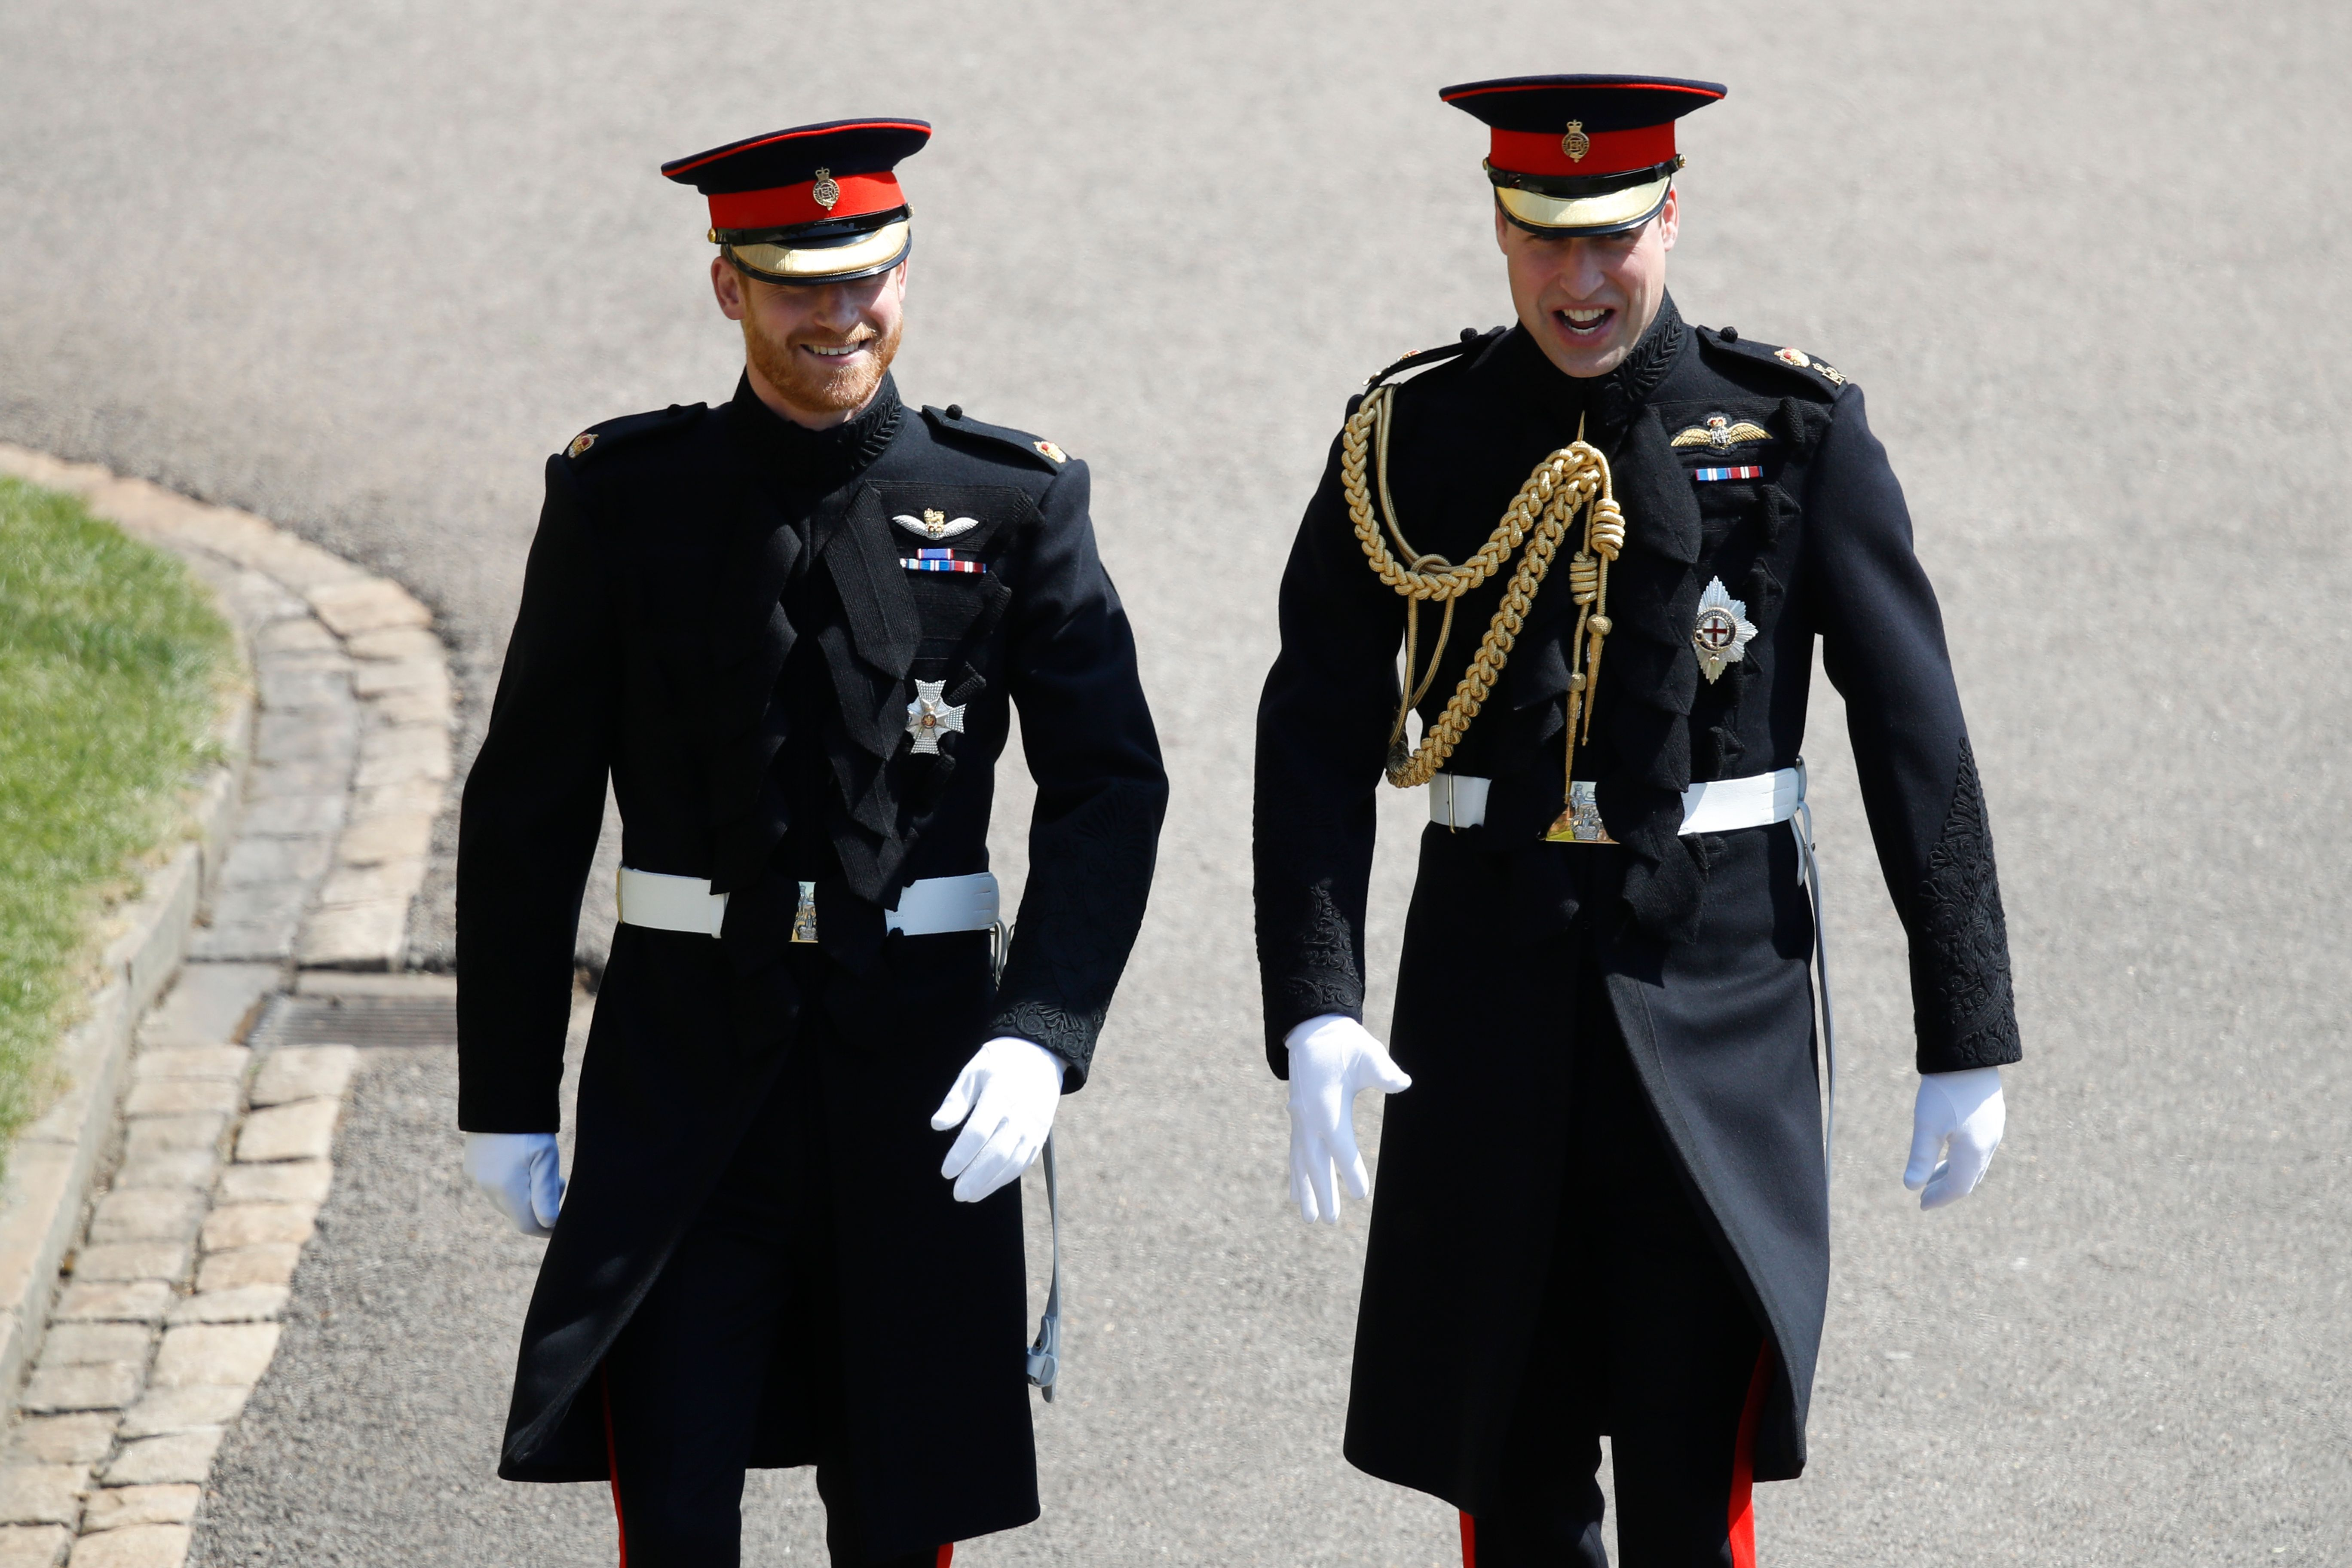 Prince Harry with his brother William at the royal wedding in May of 2018.